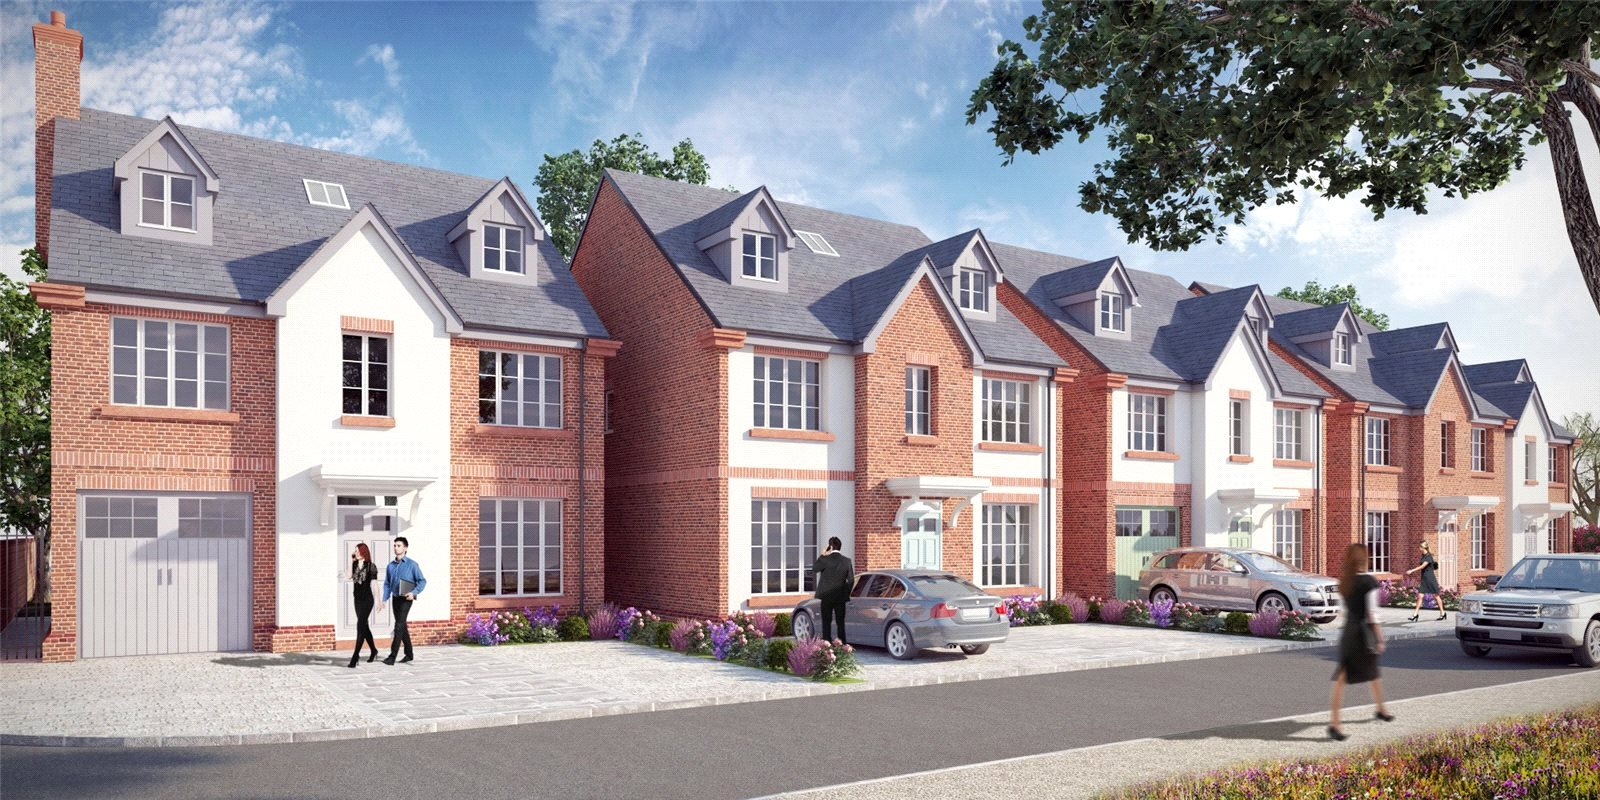 5 Bedrooms Detached House for sale in Plots 5 Birch House Close, Green Lane, Mossley Hill, L18